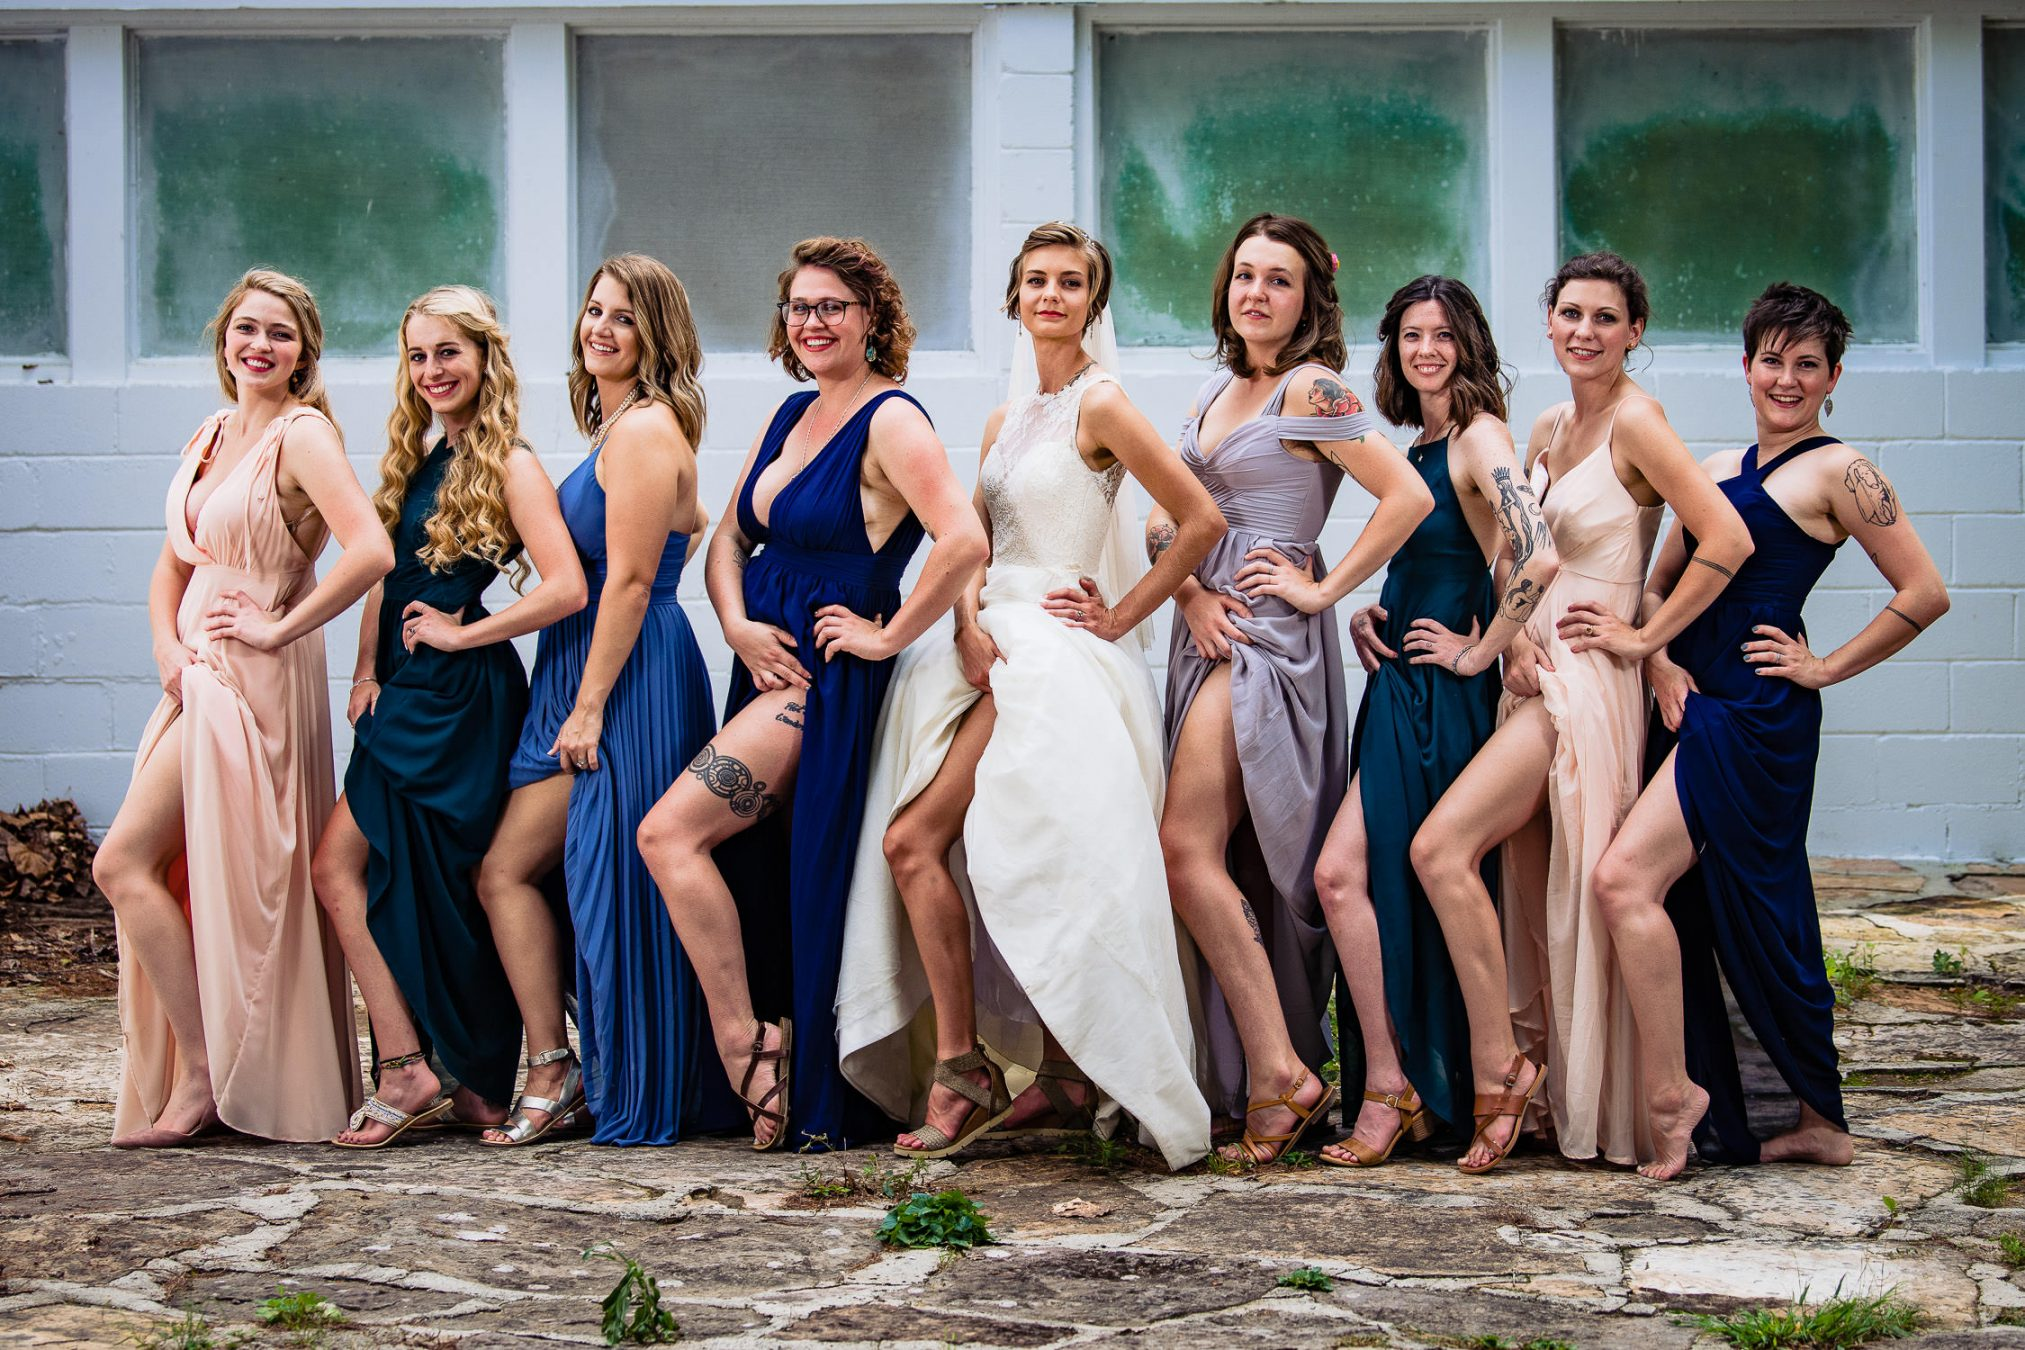 bride and bridesmaids showing off legs